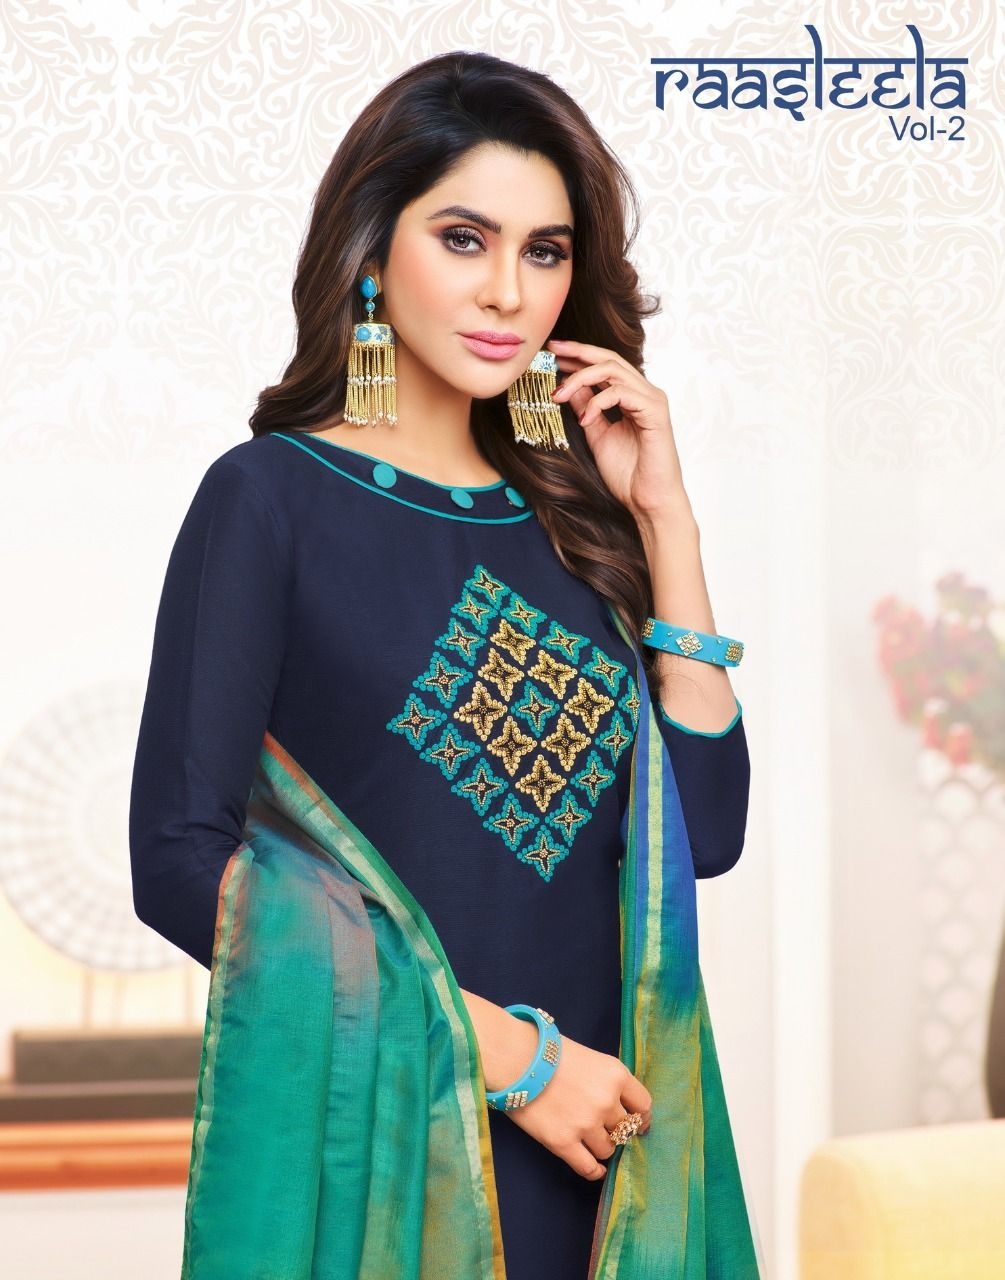 293521ca0e Rasleela Vol 2 by Kaycee Kasmeera Designer Printed Cotton Slub with  Embroidery Work Dress Material Collection at Wholesale Rate